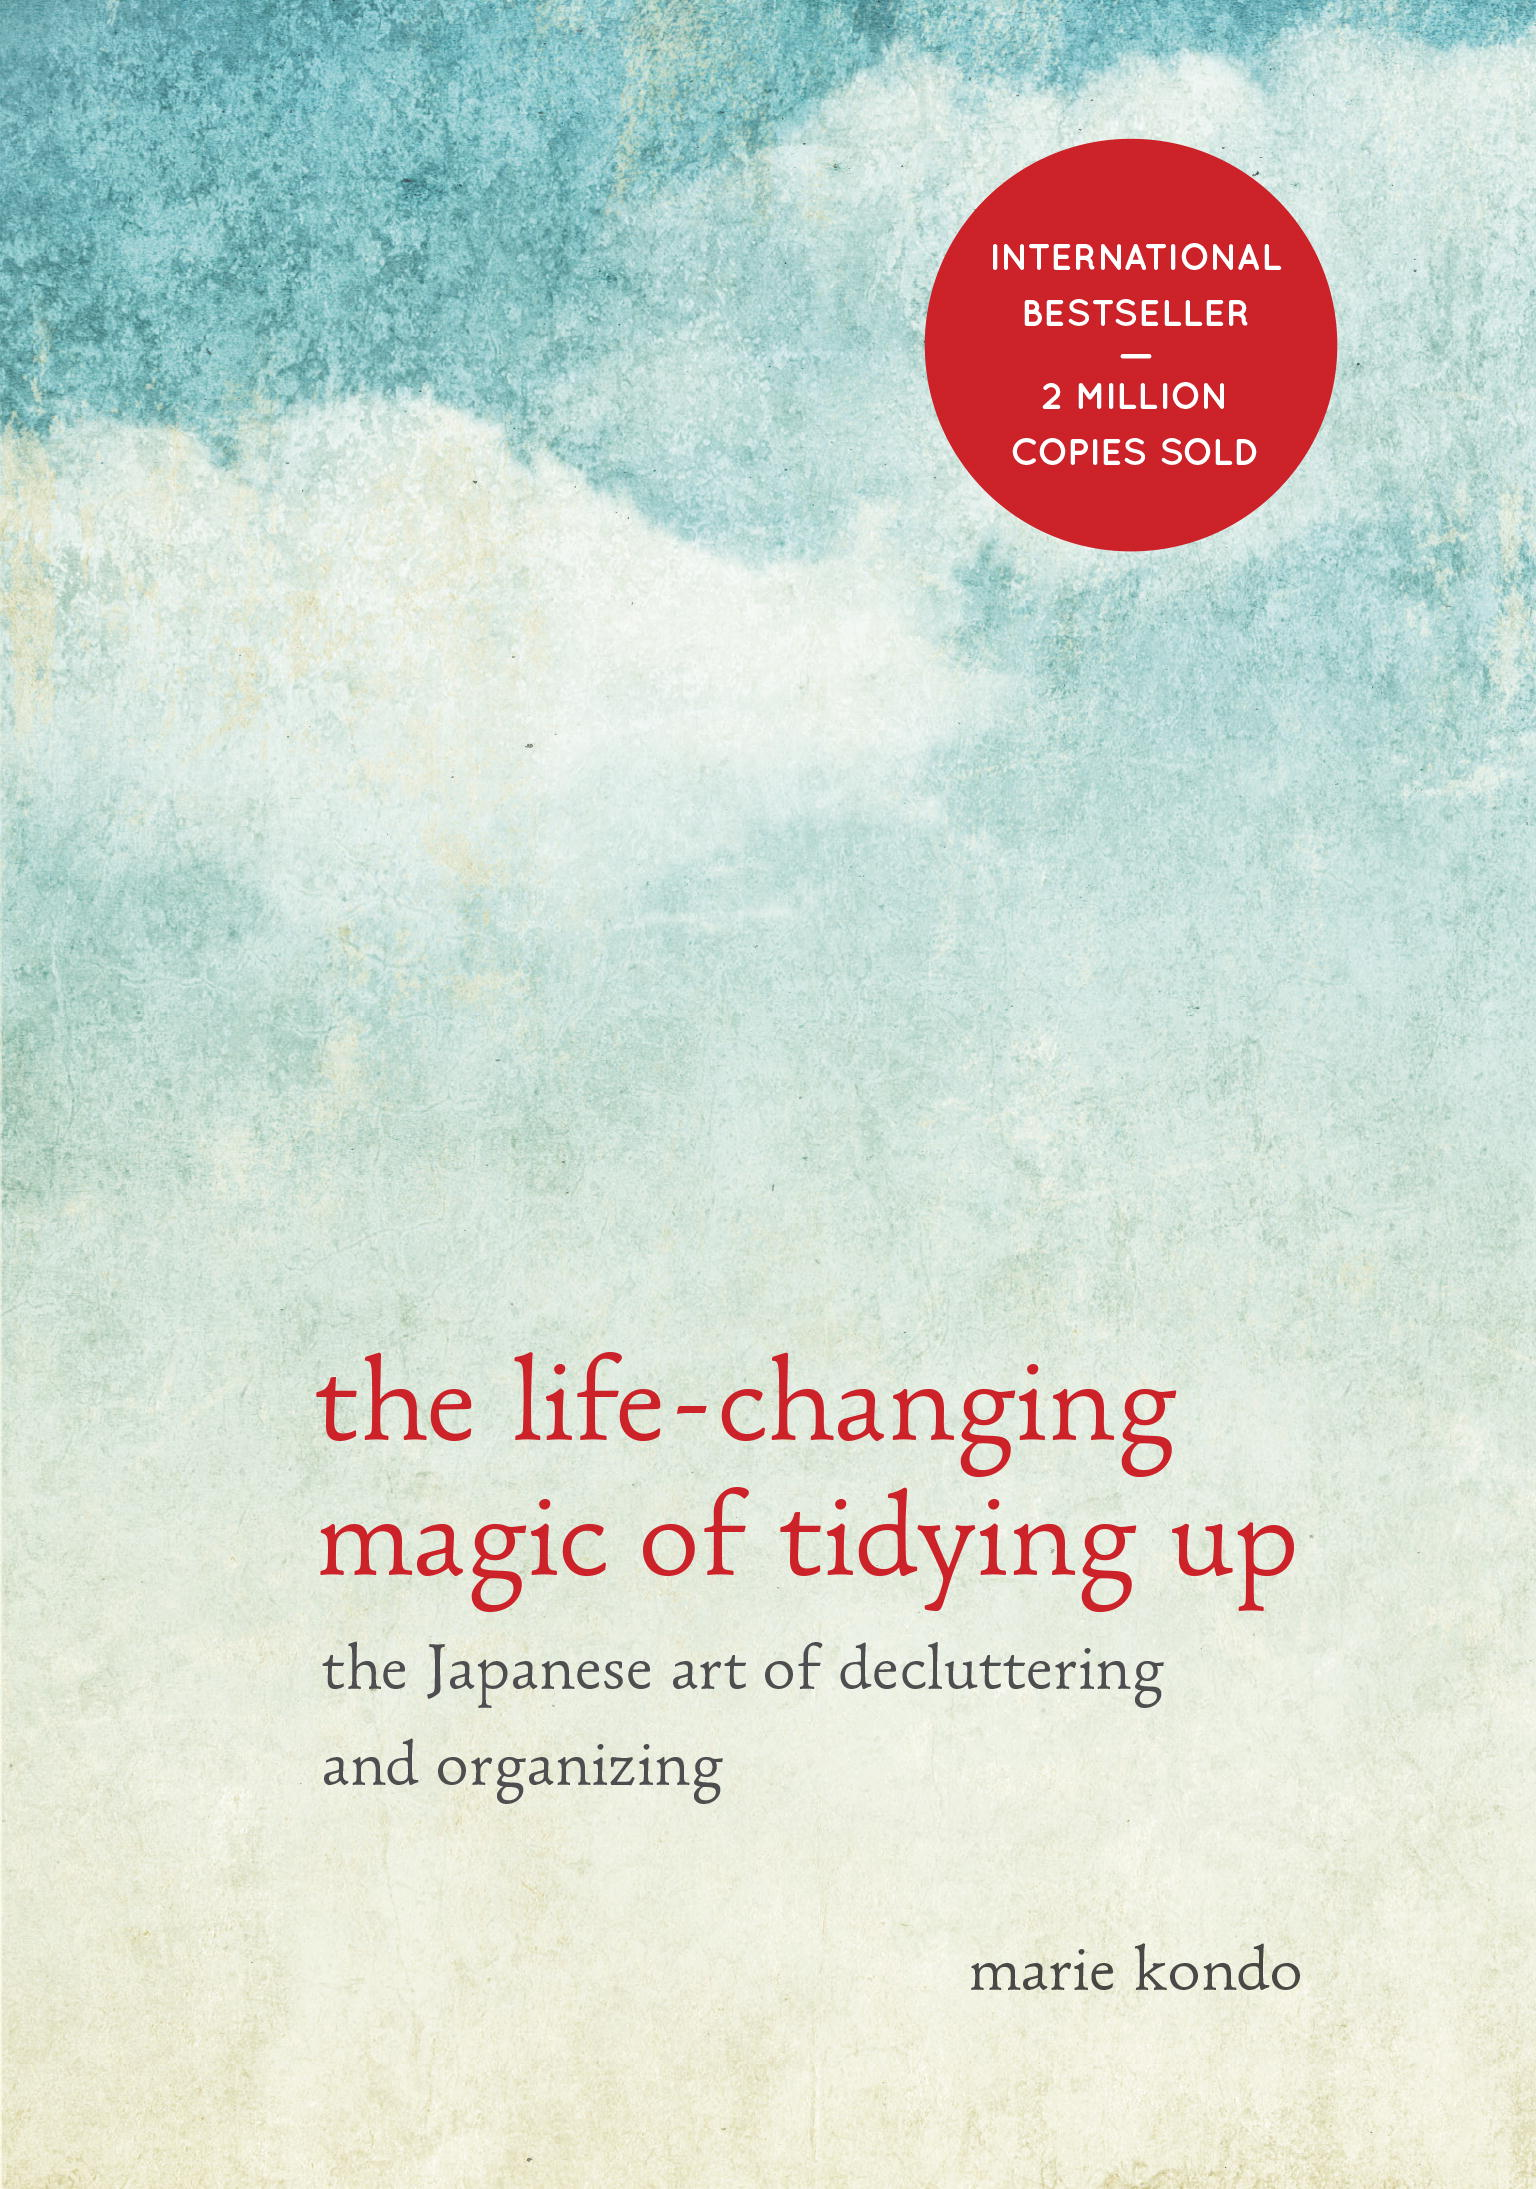 simplicity-books-the-life-changing-magic-of-tidying-up